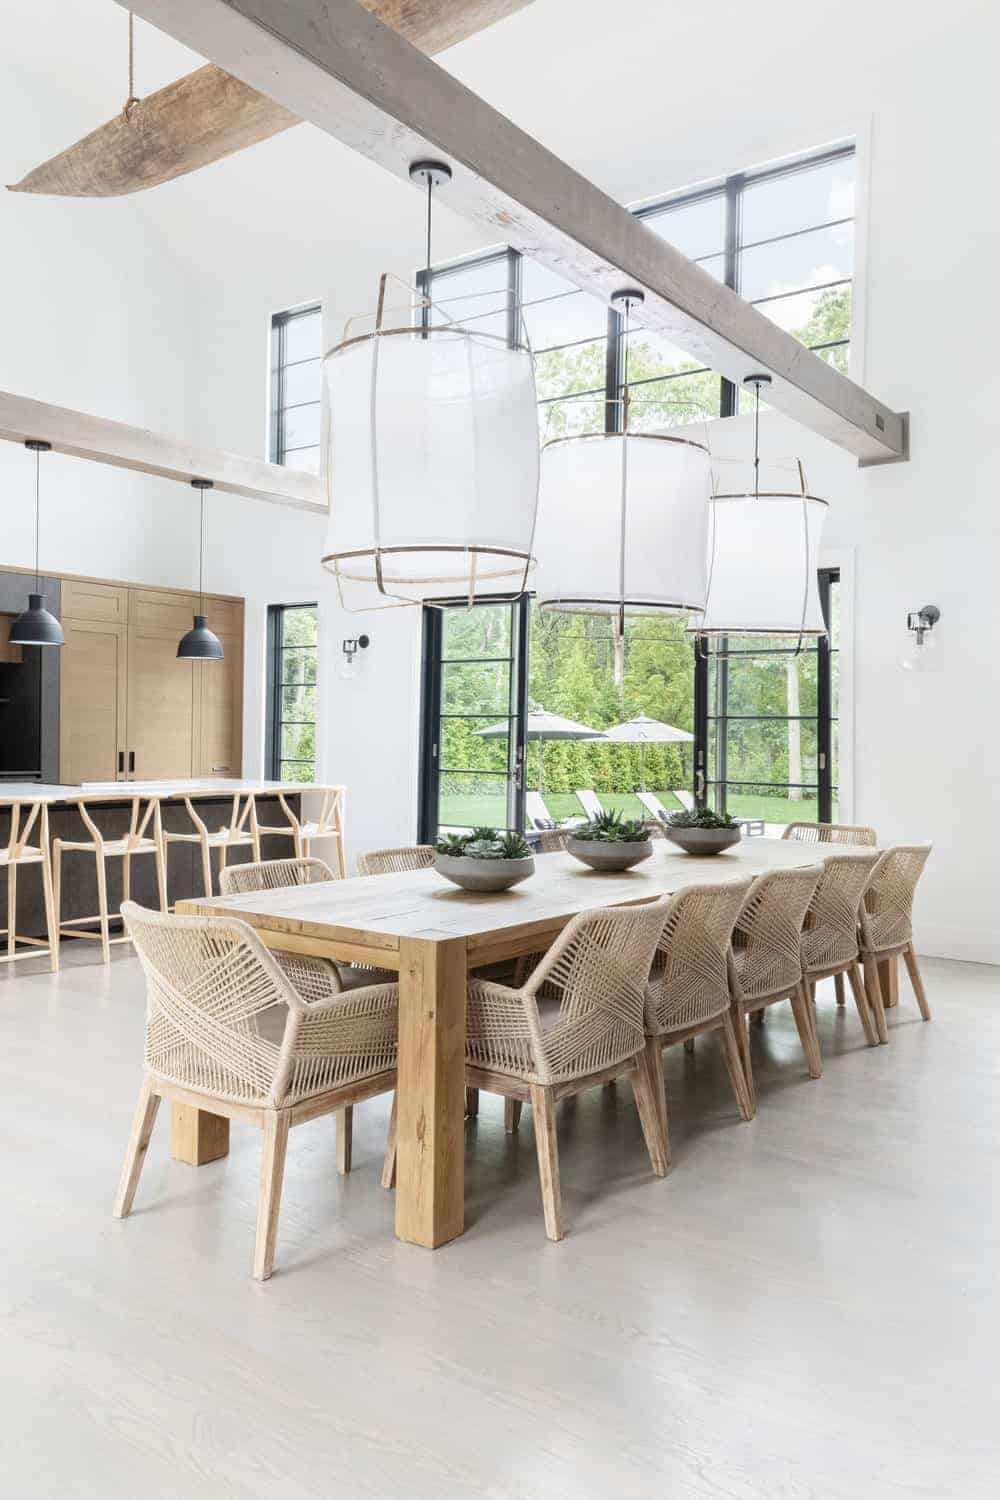 The high ceiling is paired with tall white walls with tall windows that bring in an abundance of natural lighting that complements the wooden dining table paired with rustic woven wicker armchairs. This is topped with a large floating beam supporting hooded pendant lights.